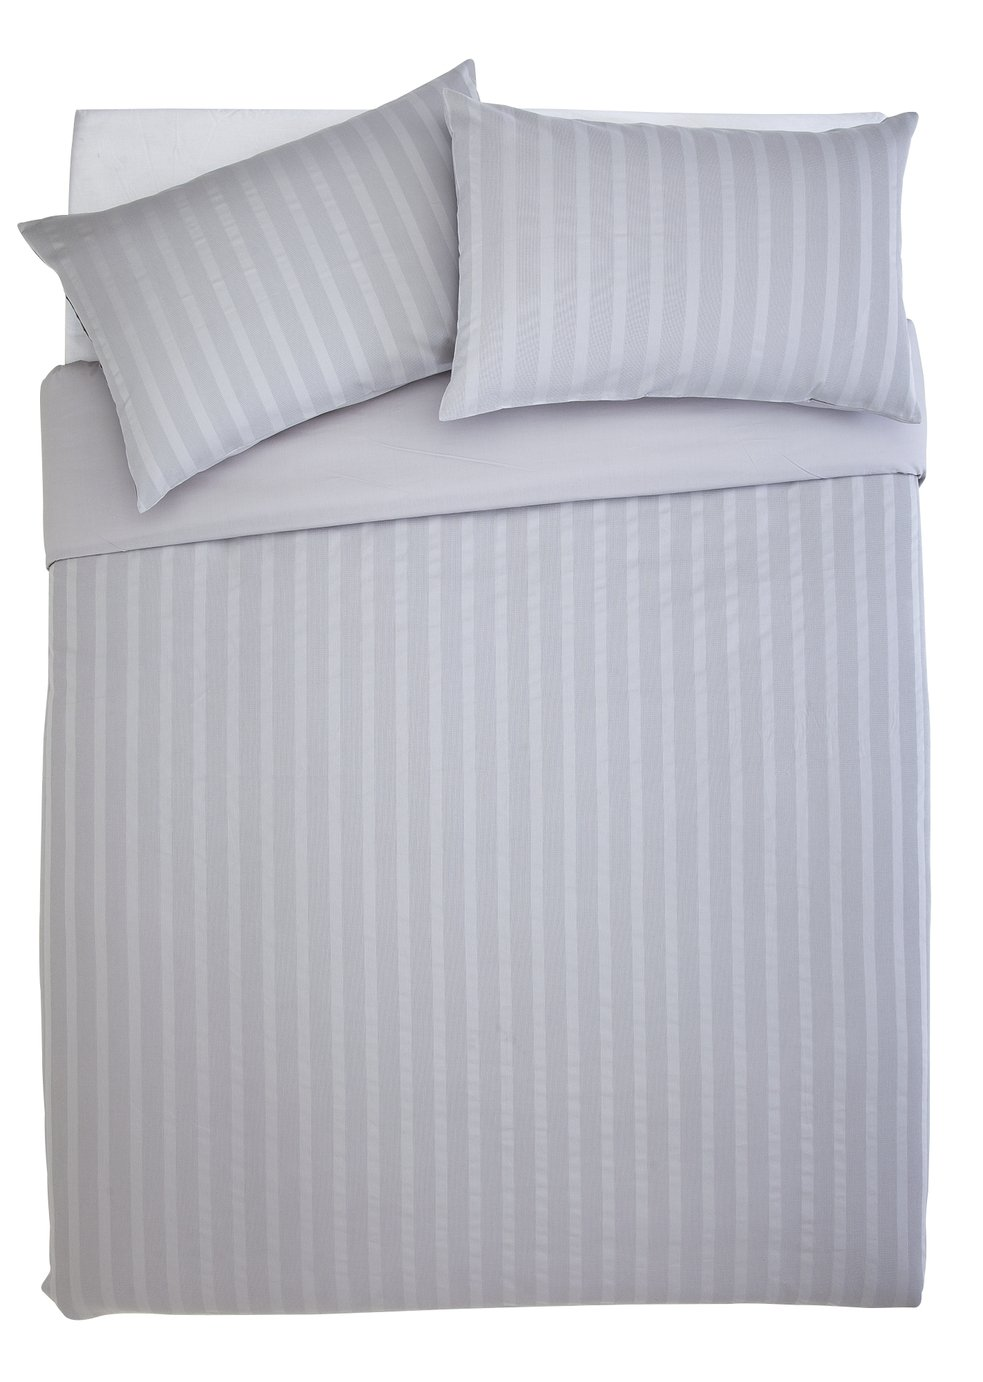 Sainsbury's Home 300TC Grey Waffle Bedding Set - Double